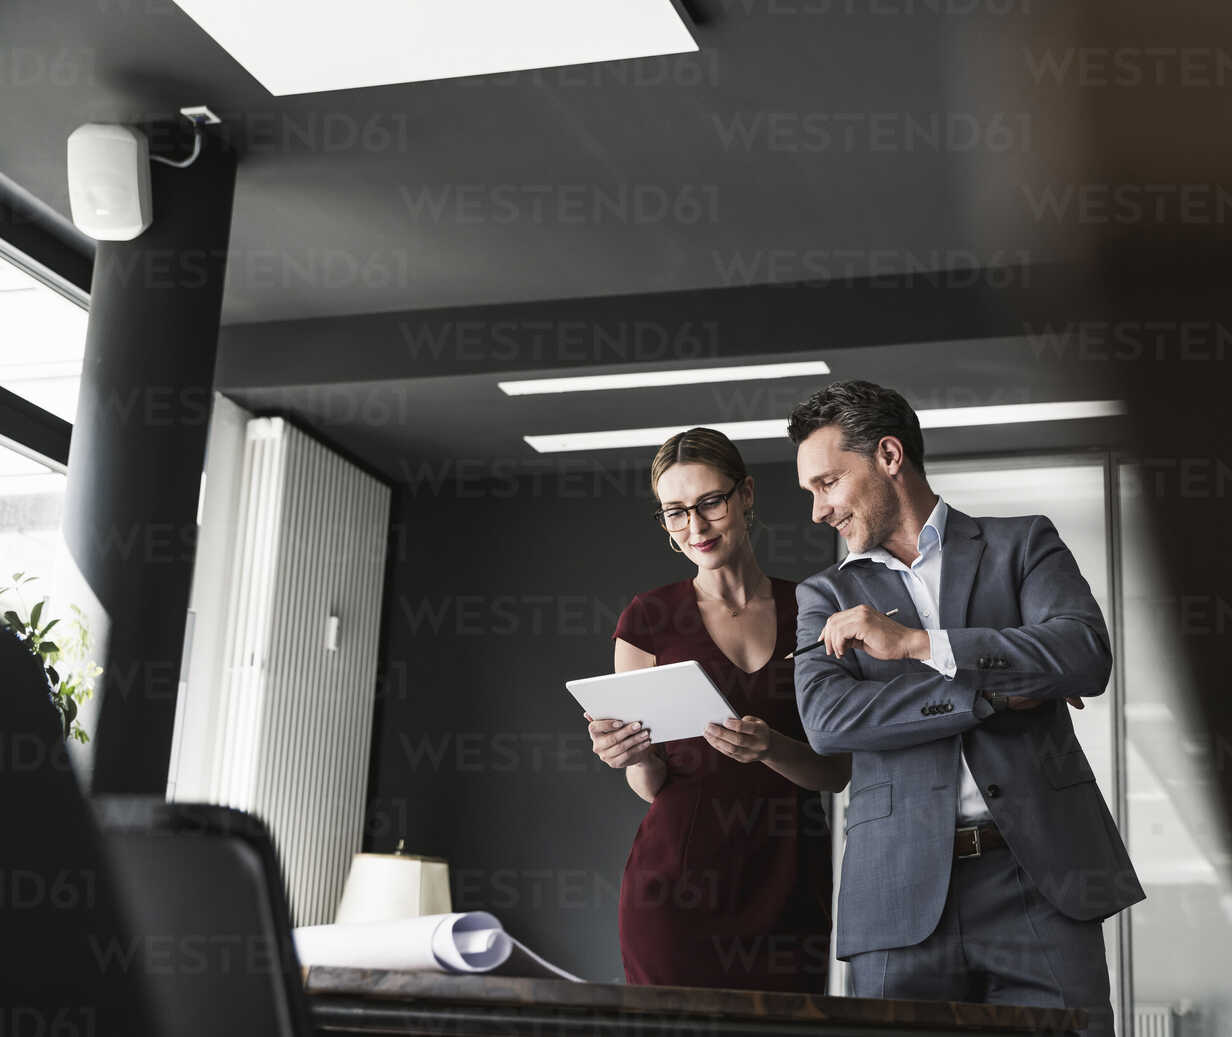 Businesswoman and businessman sharing tablet in office - UUF14778 - Uwe Umstätter/Westend61